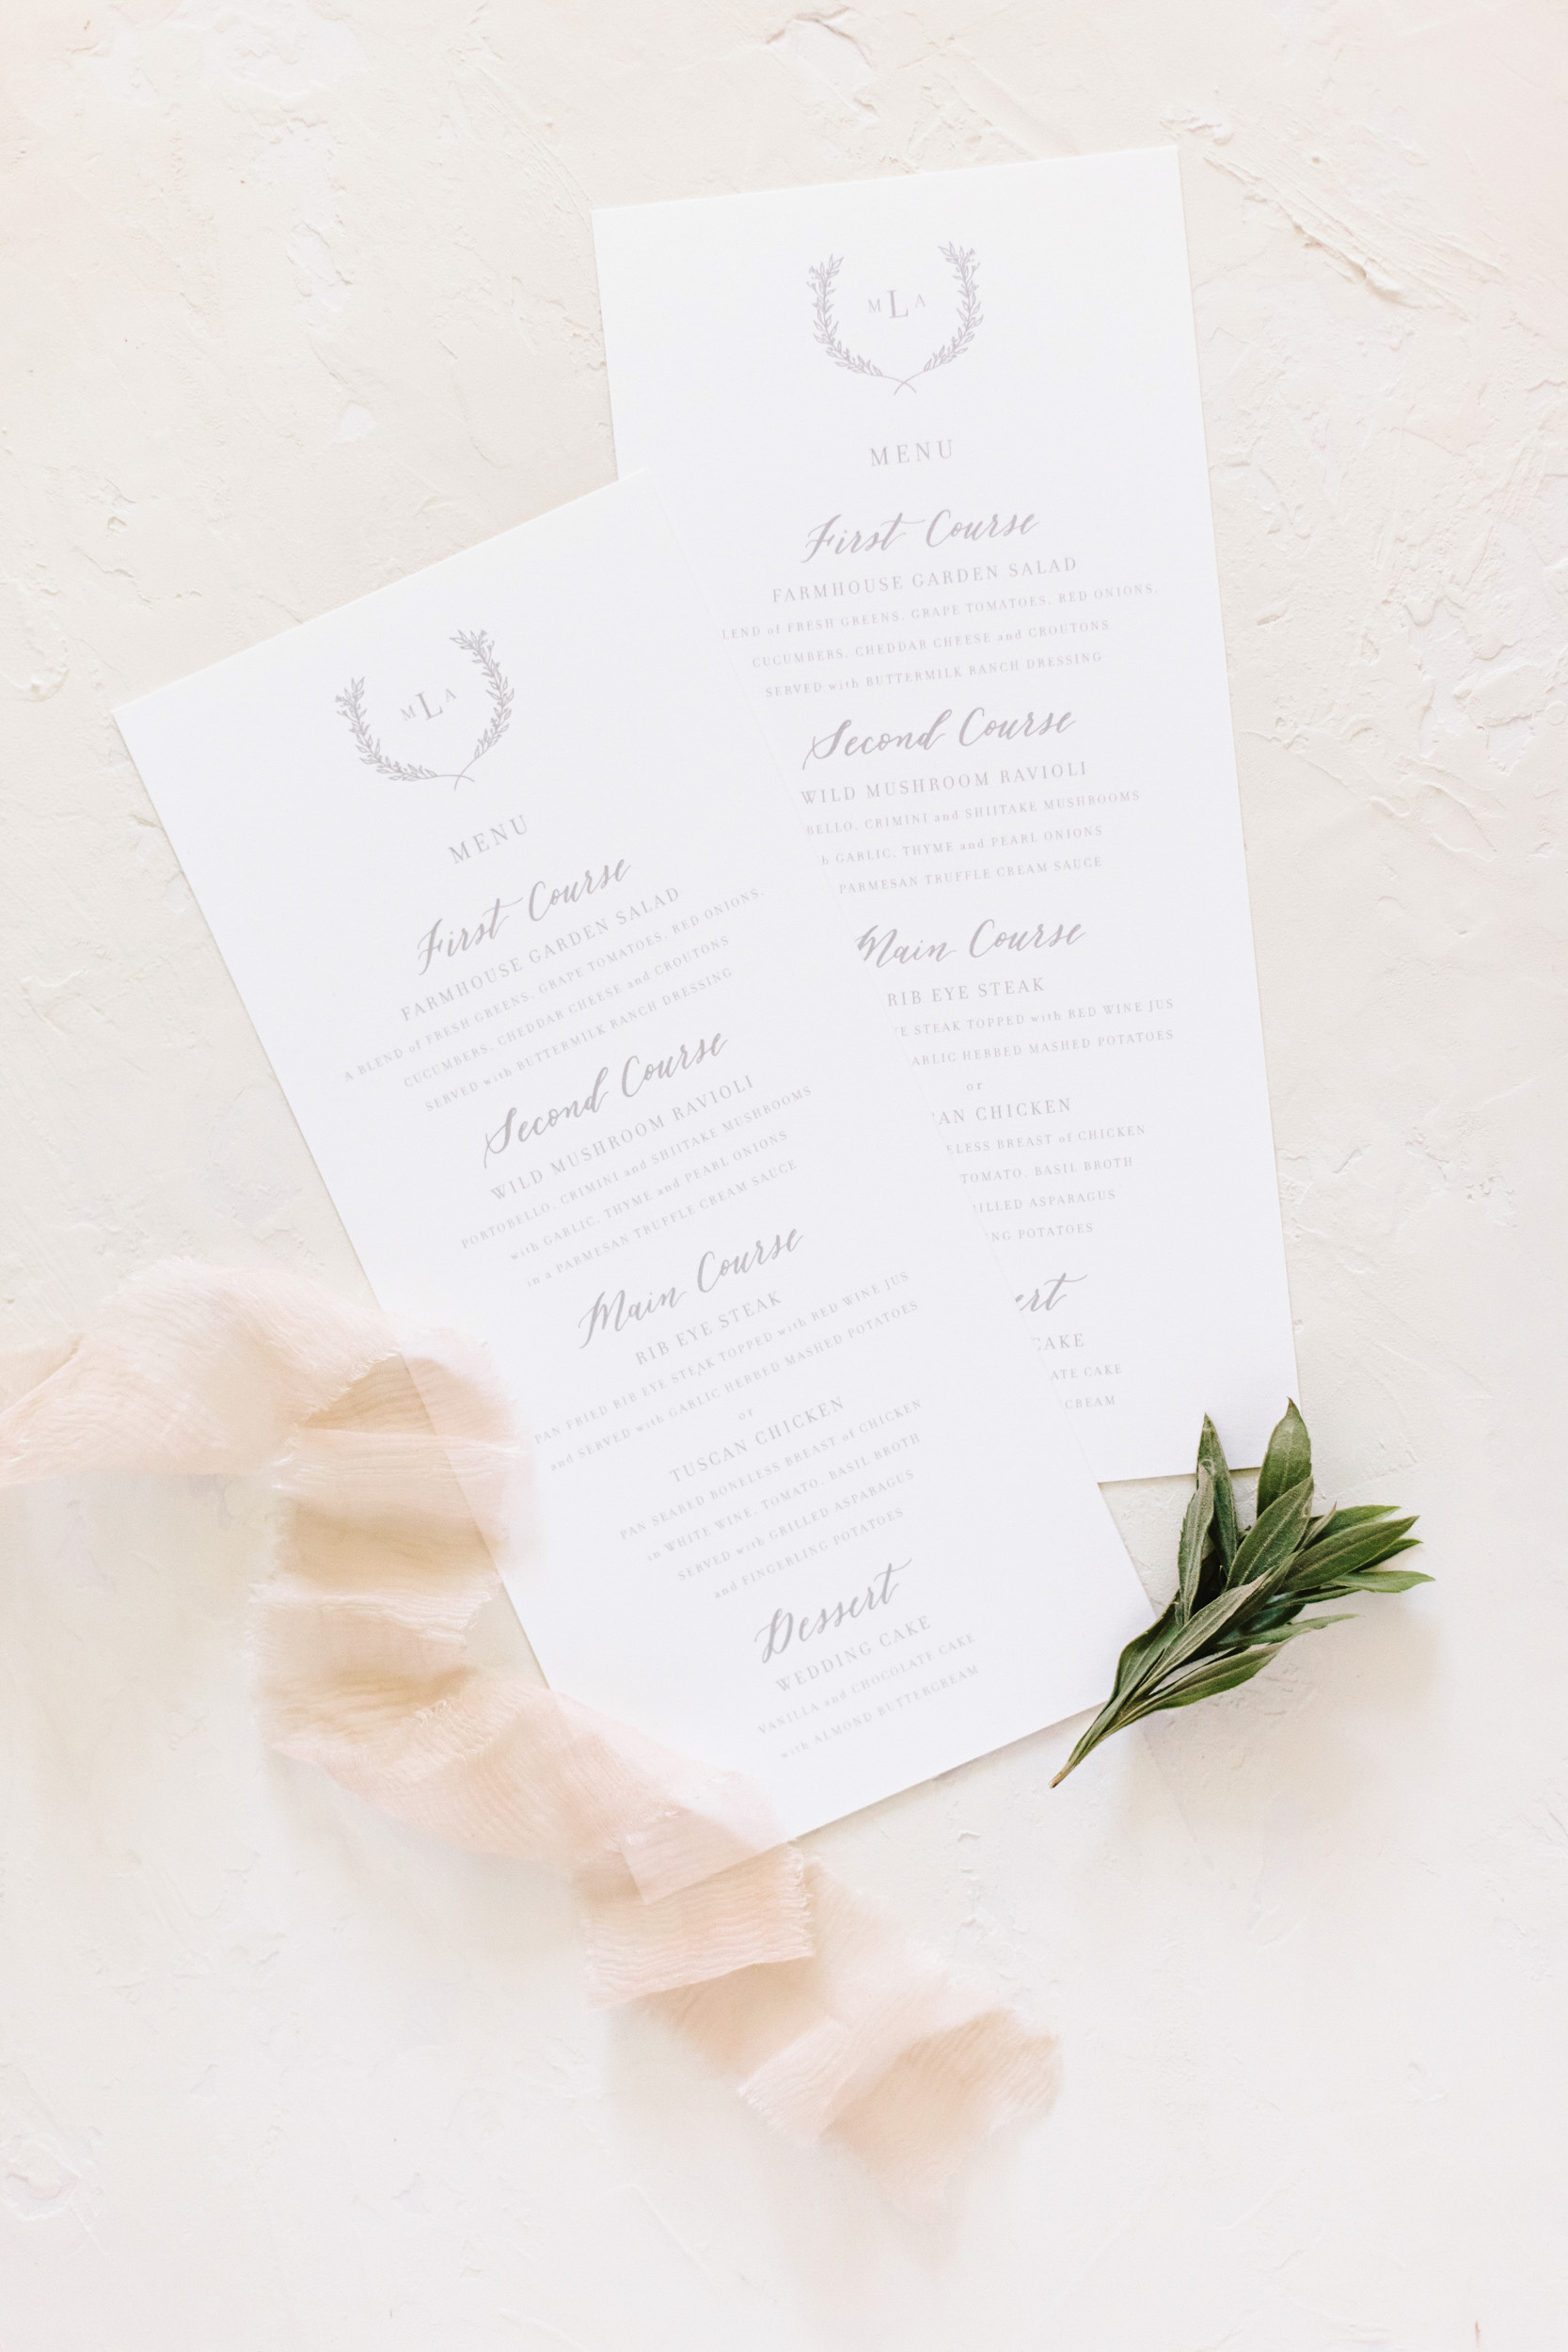 Wedding Menu_Dreams and Nostalgia.jpg